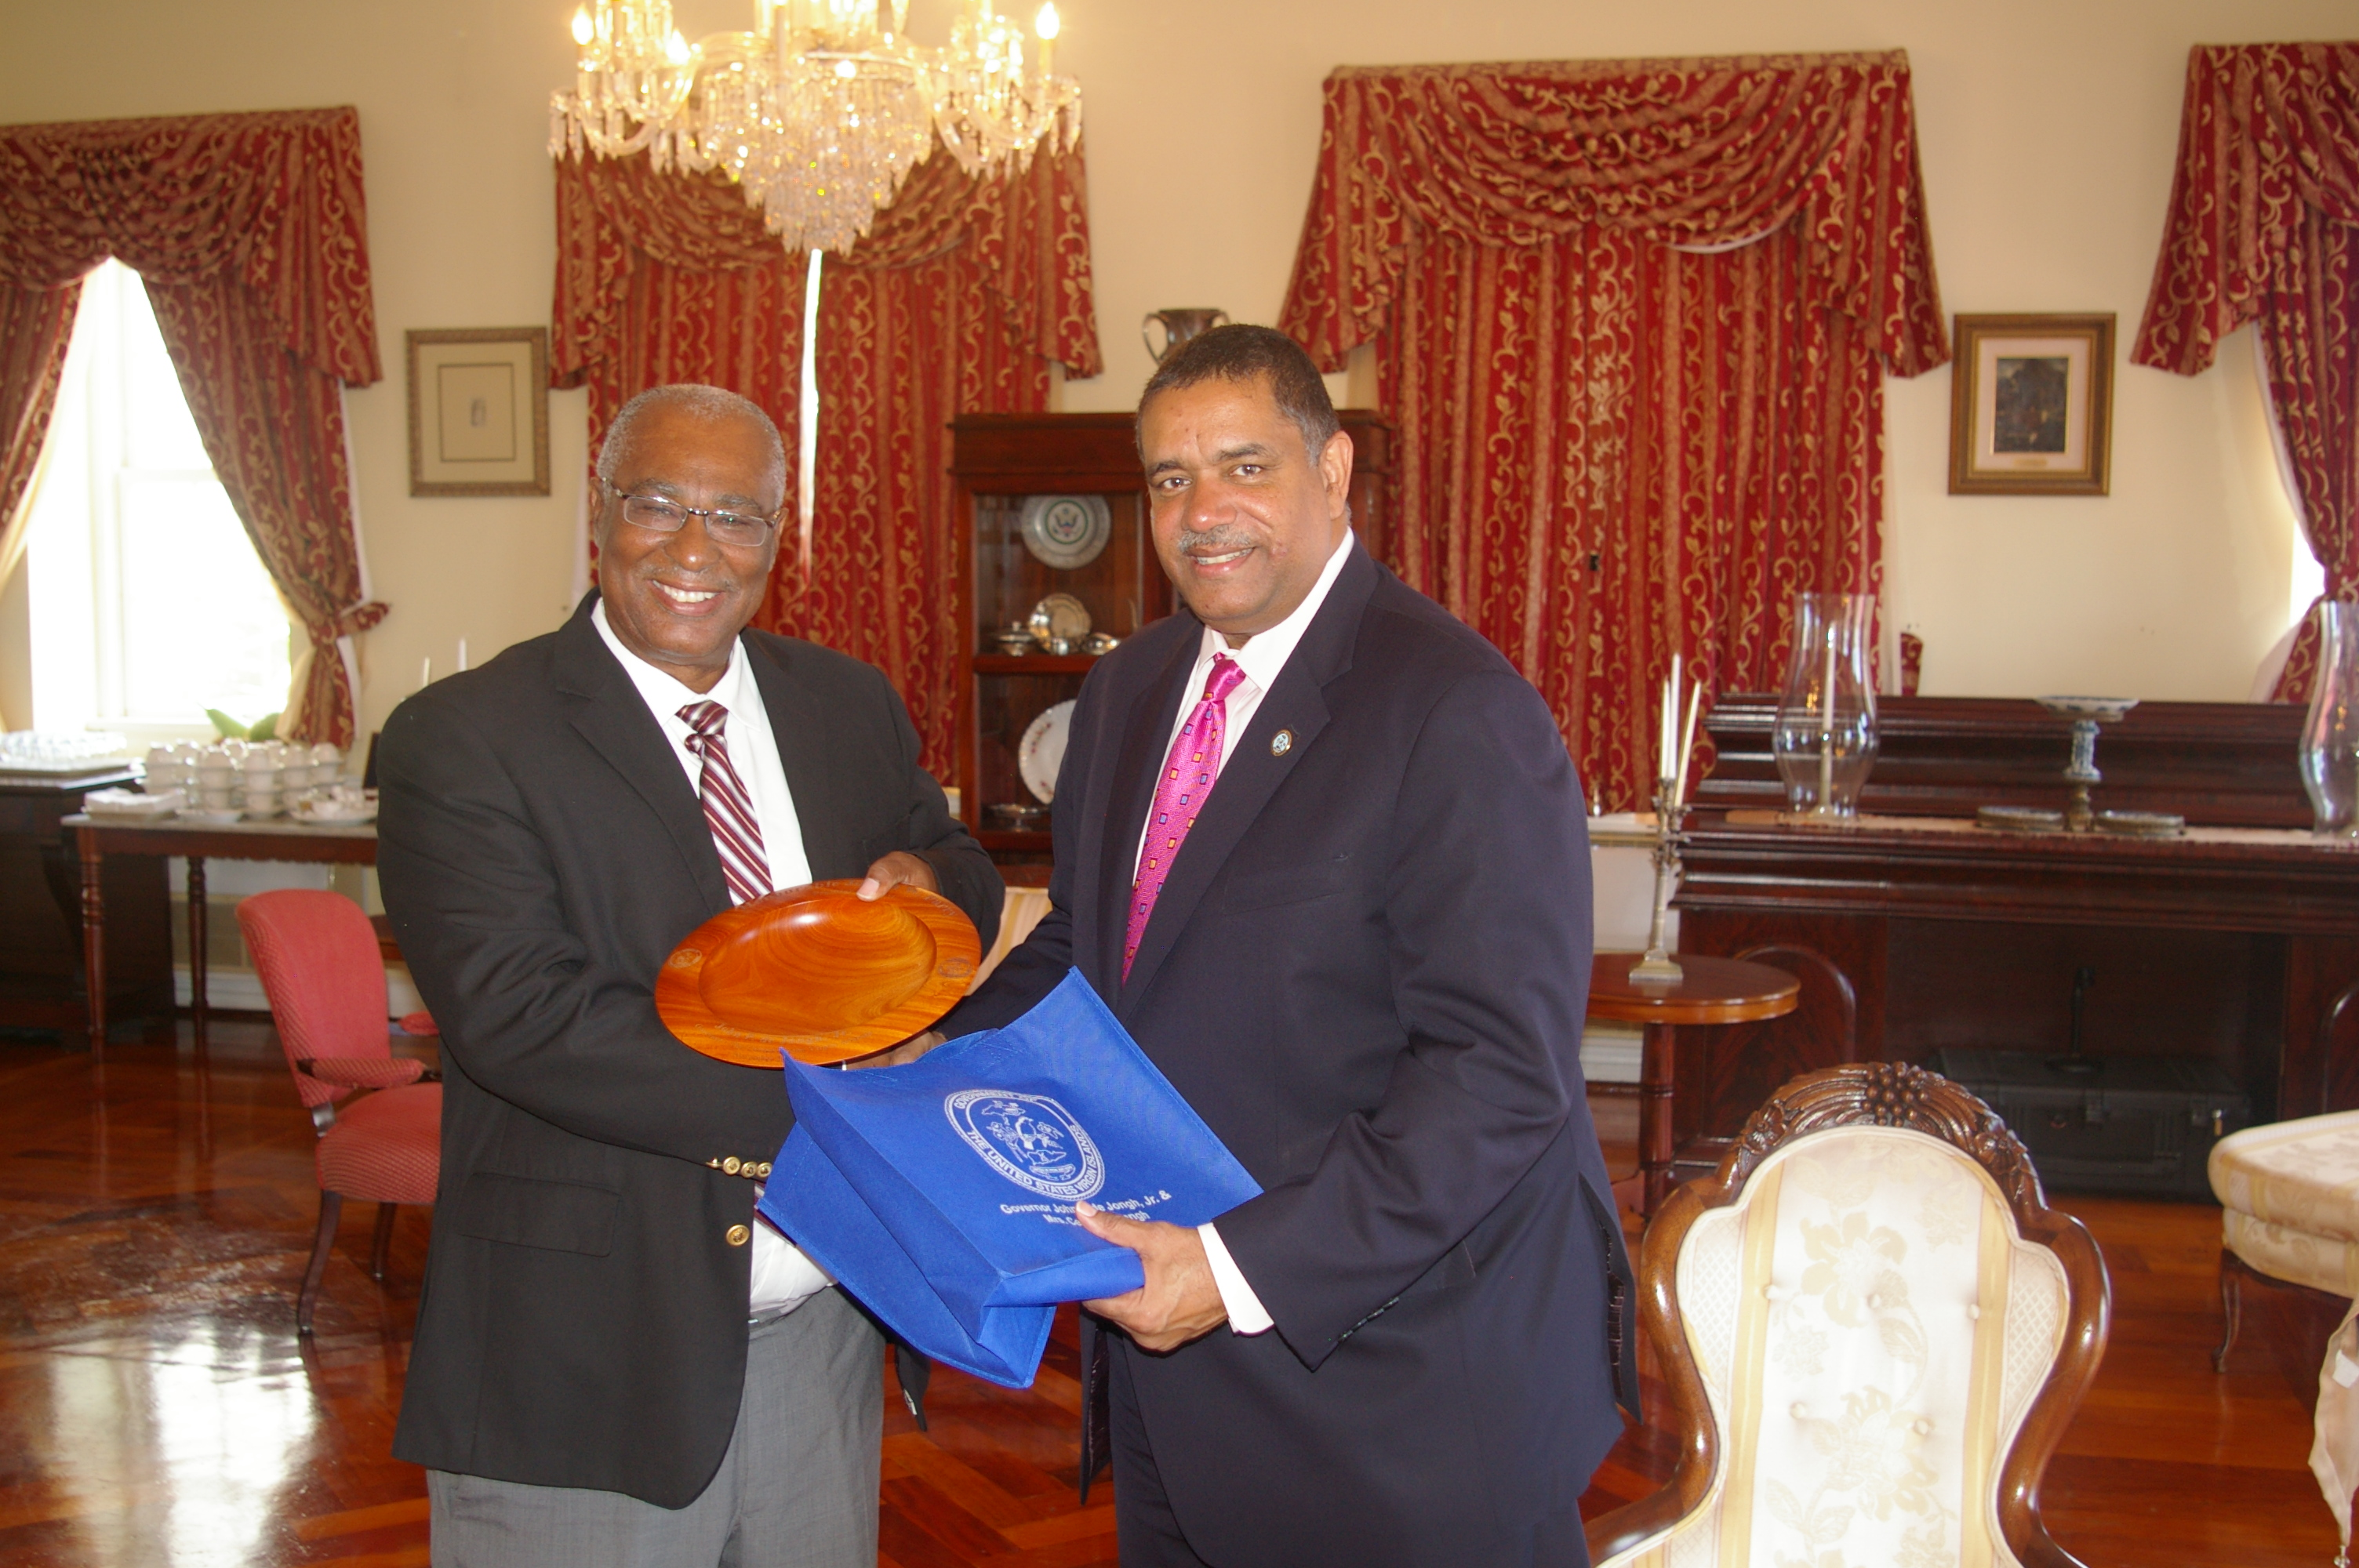 Premier, Hon. Joseph Parry receiving a gift of a local woodcarving from the Governor of the United States Virgin Islands (USVI), the Hon. John P. de Jongh